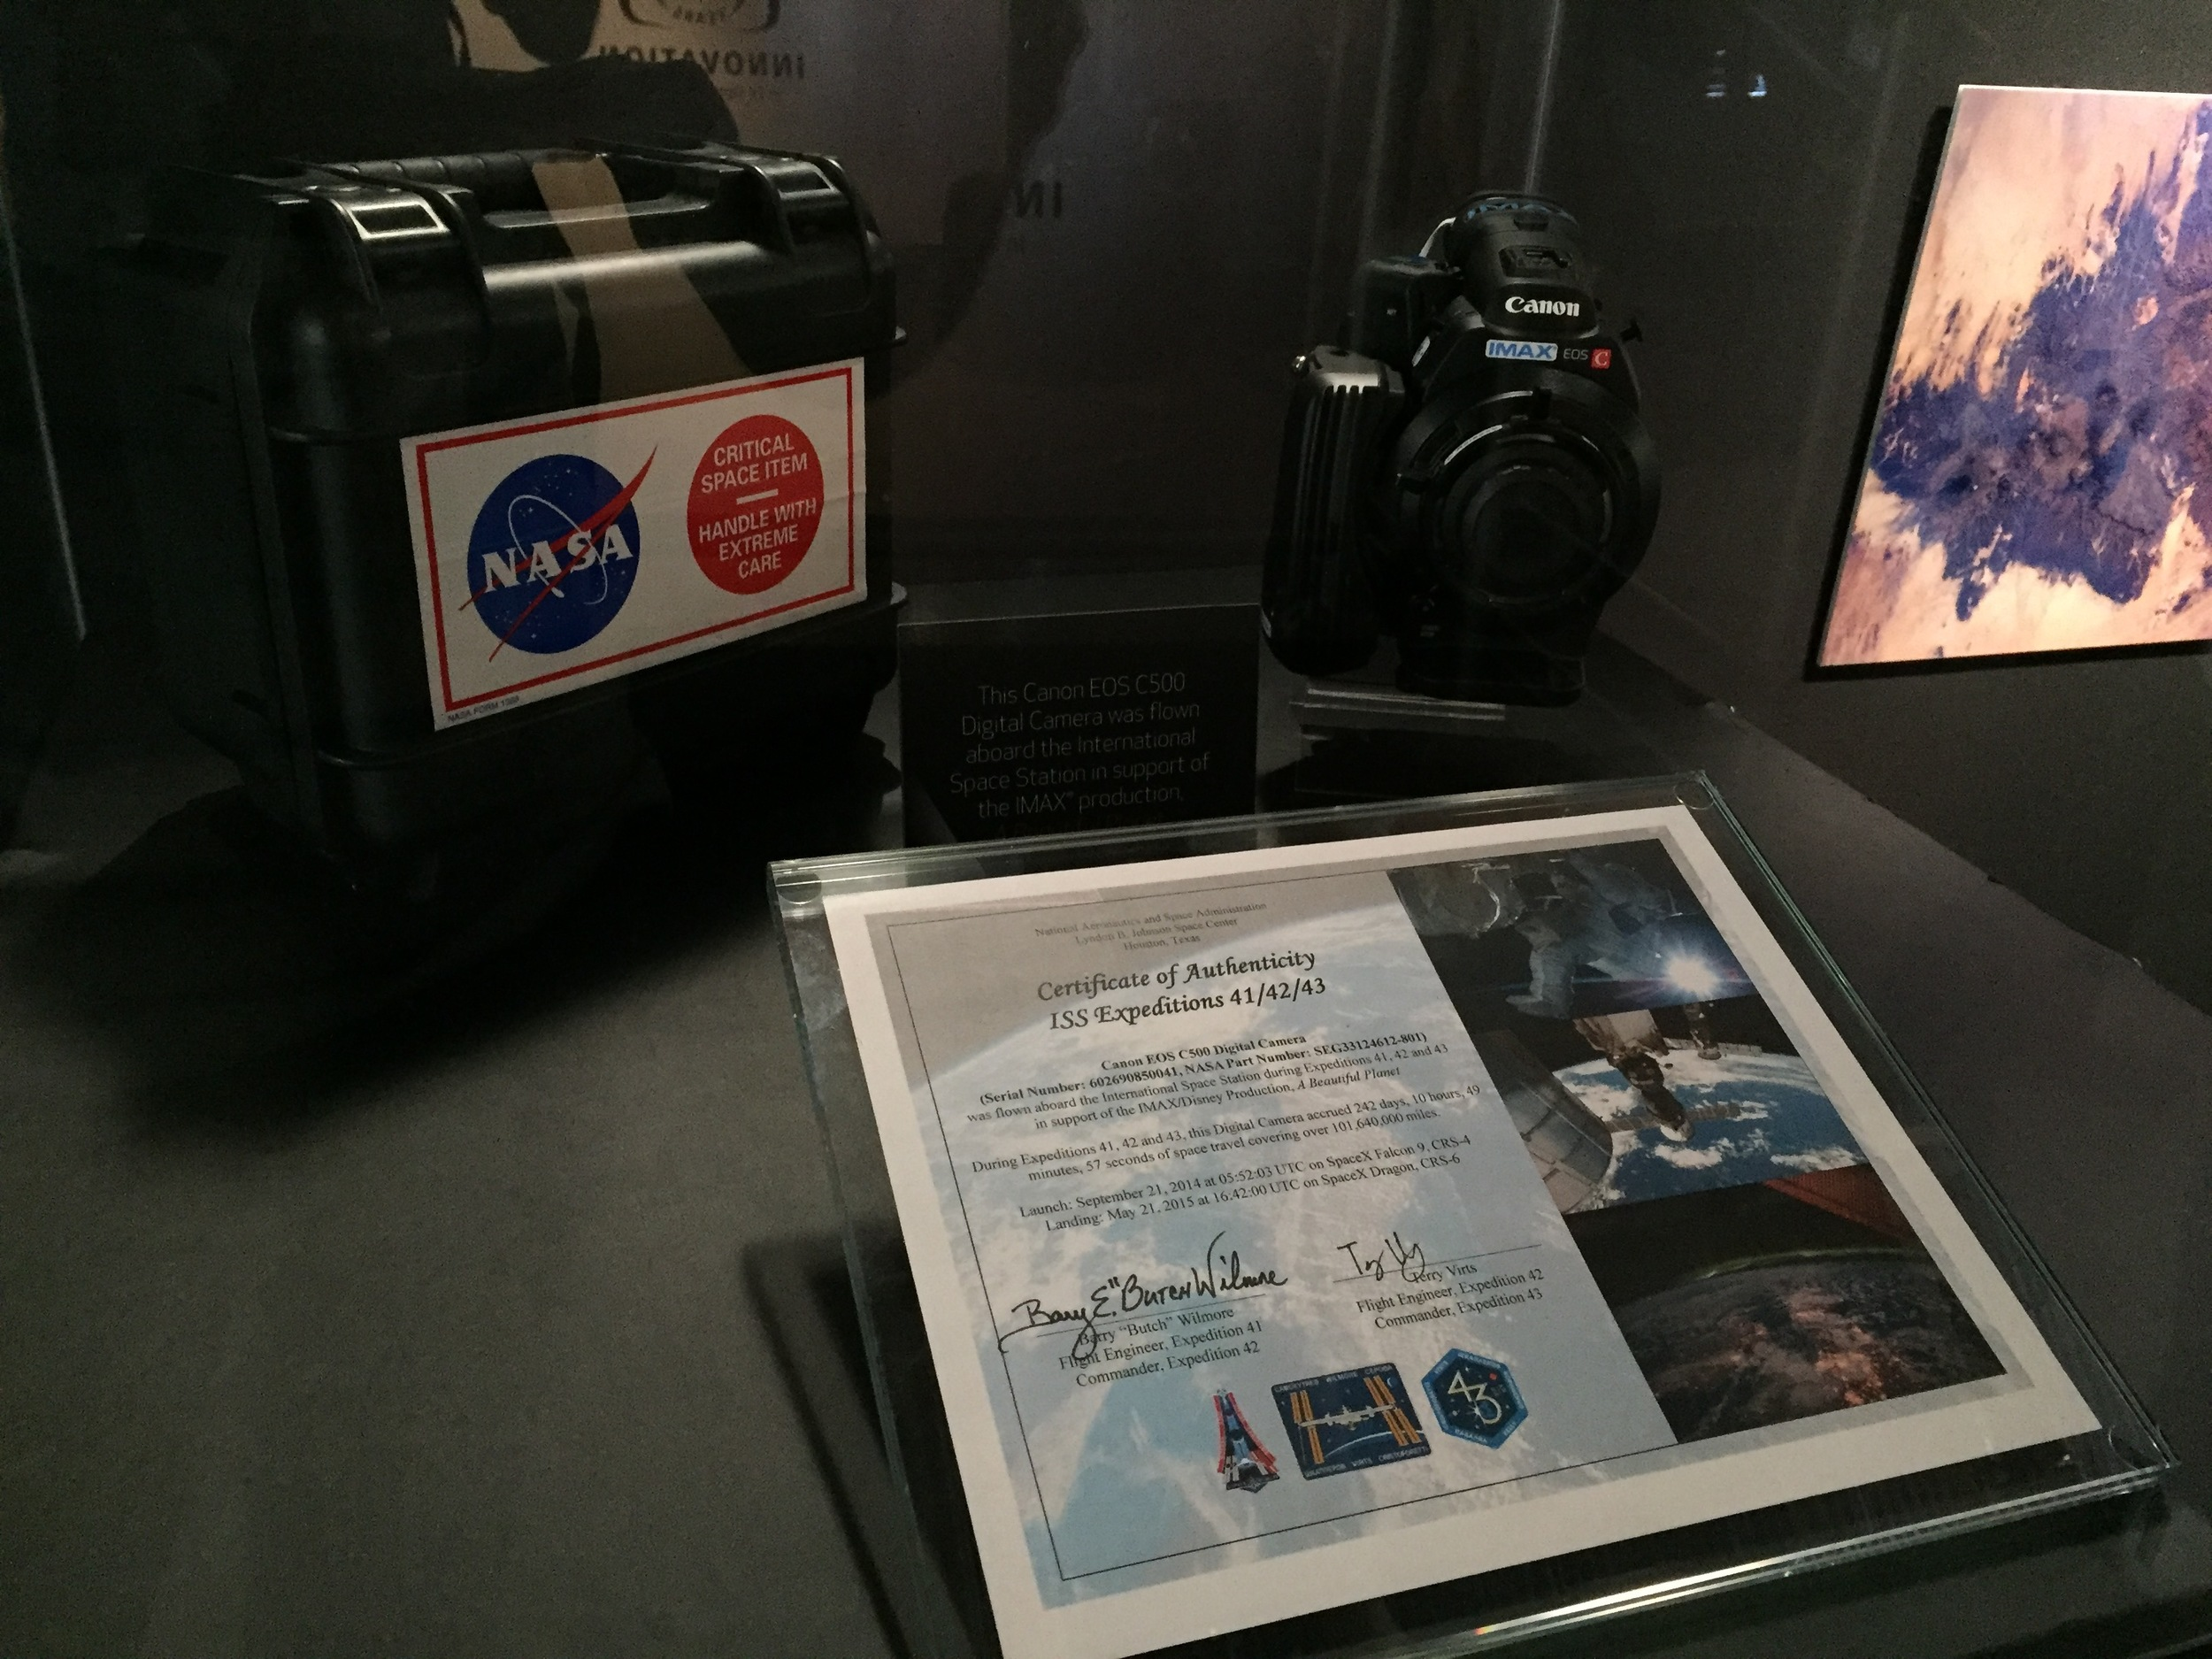 NASA's Canon C500 camera that was used in space for  A Beautiful Planet